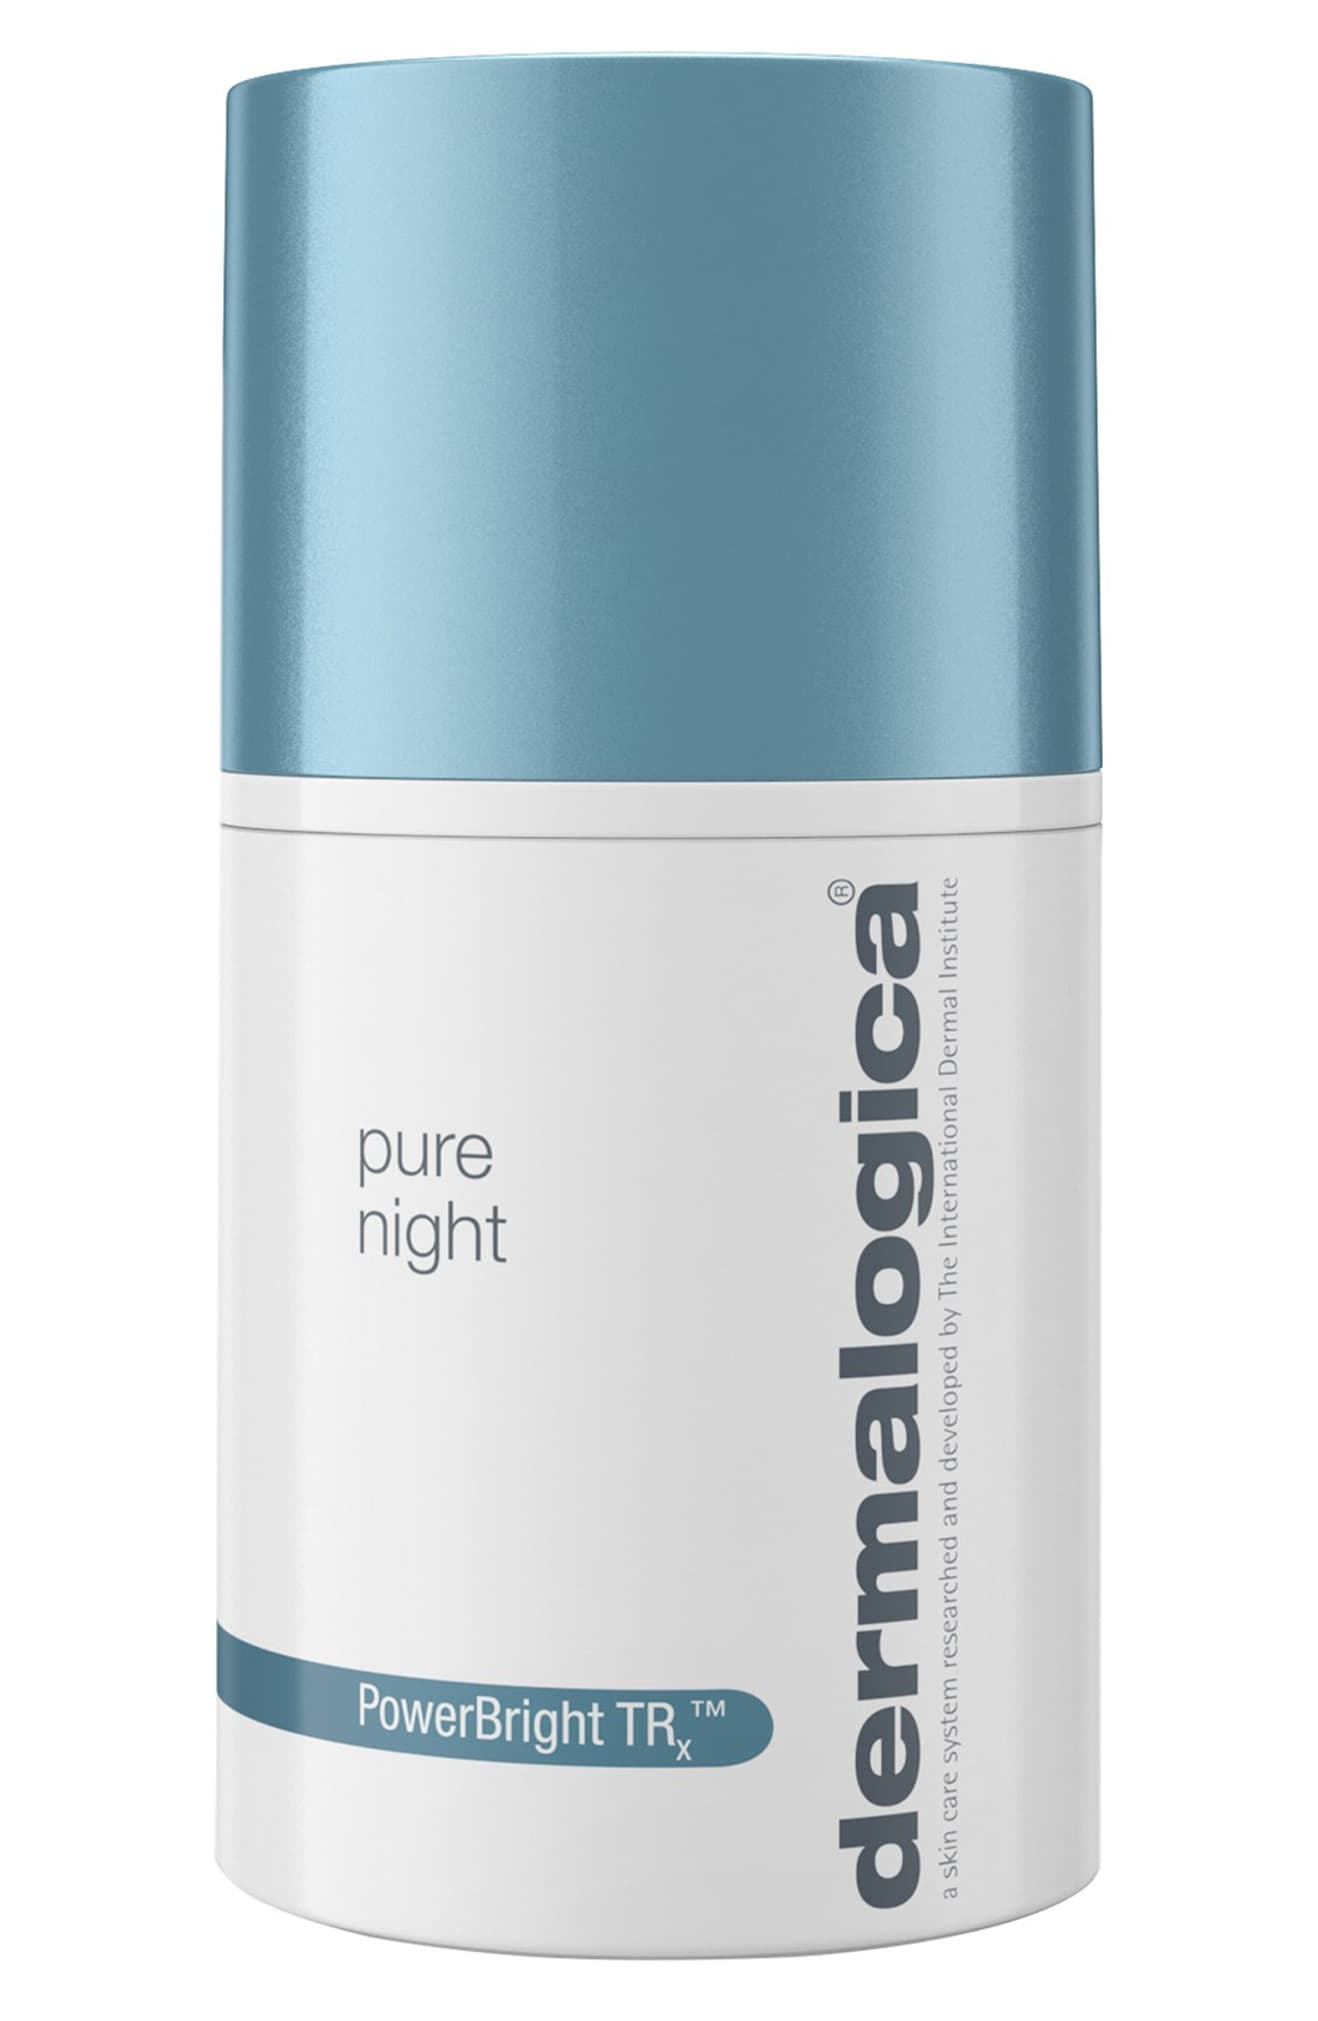 DERMALOGICA® Pure Night Cream